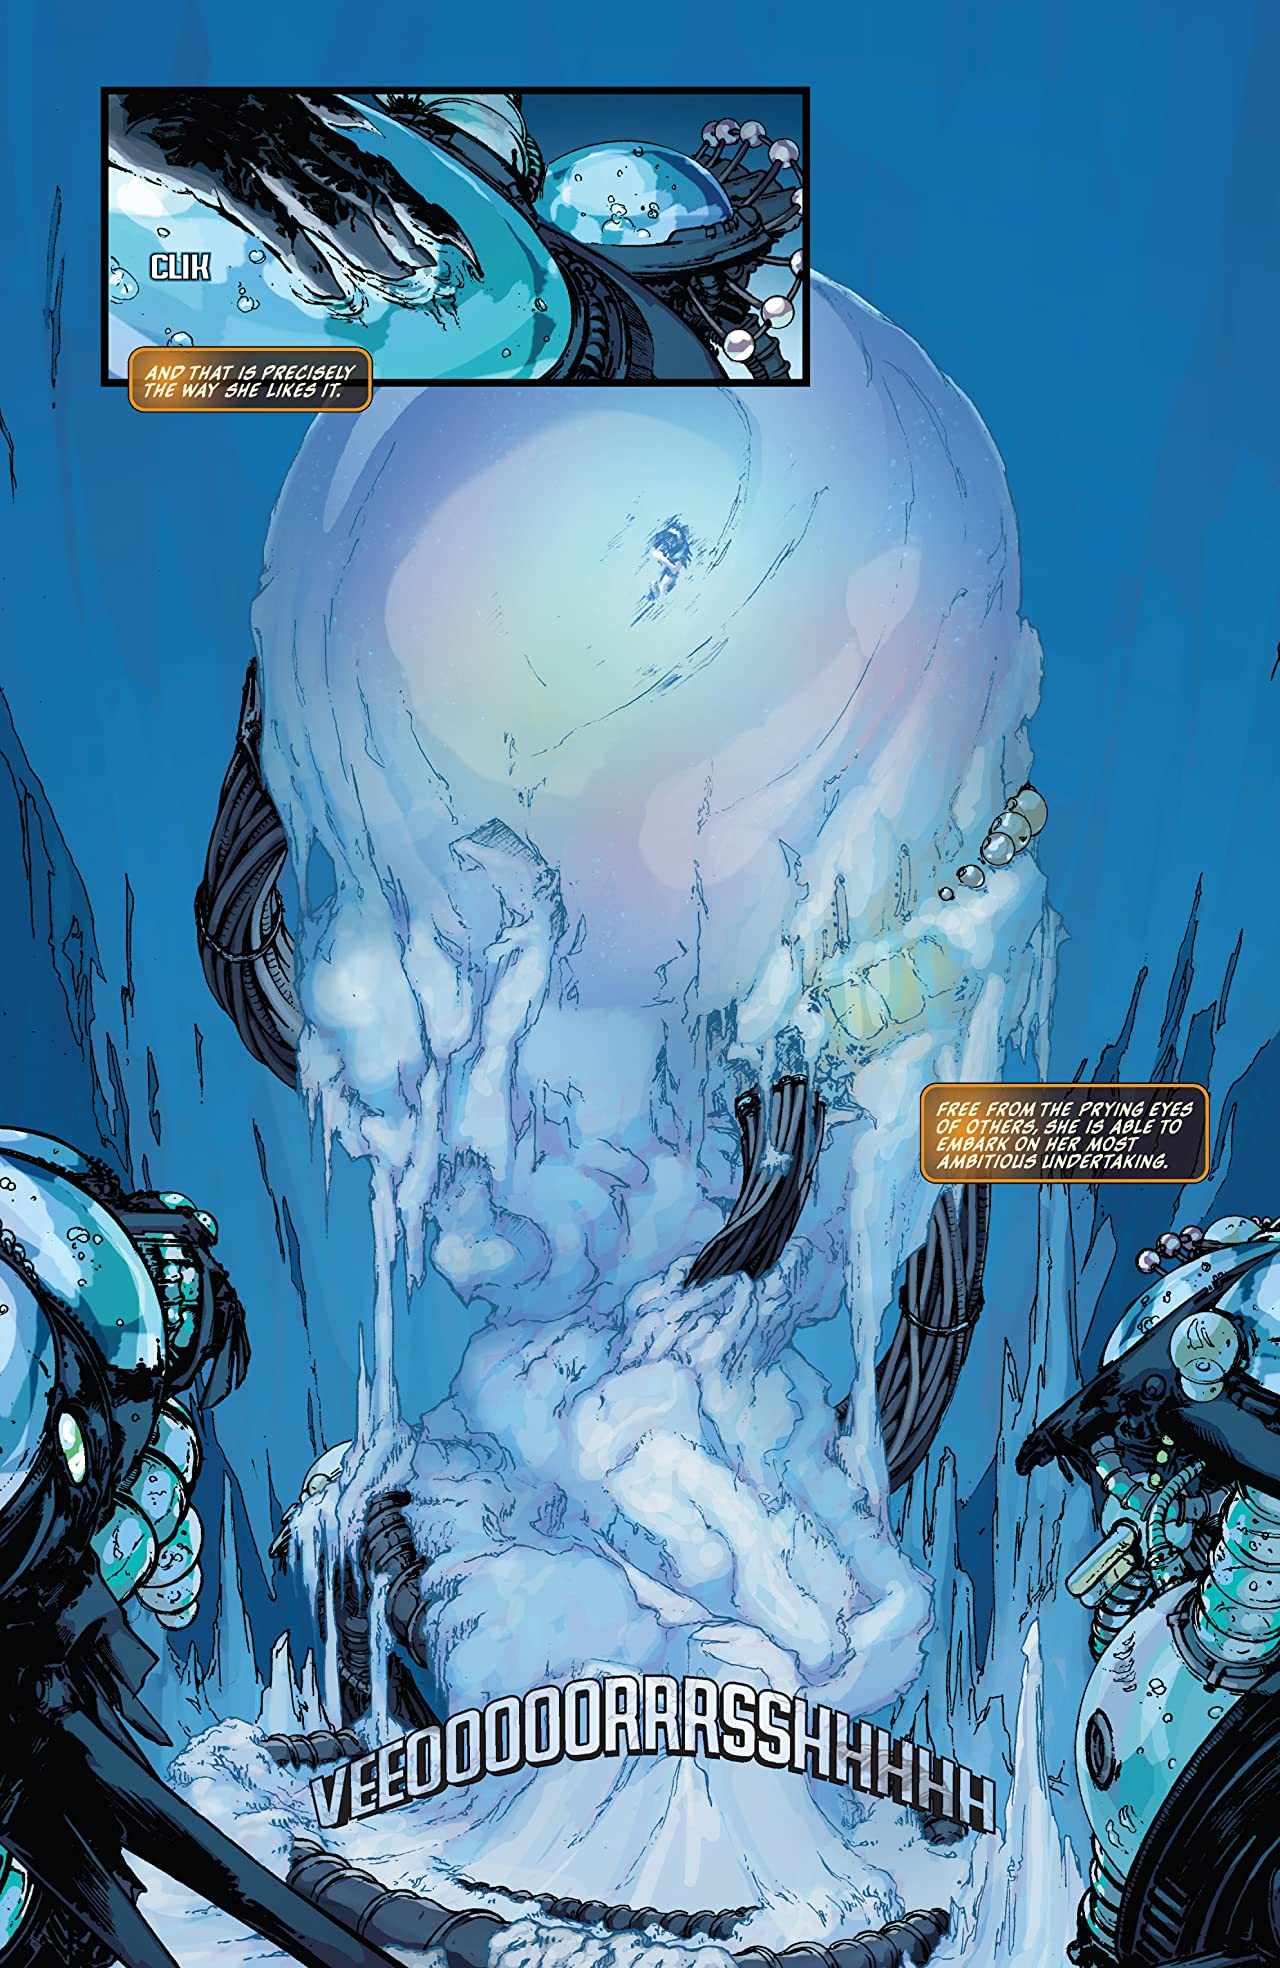 All New Fathom Vol. 5 #2 (of 8)